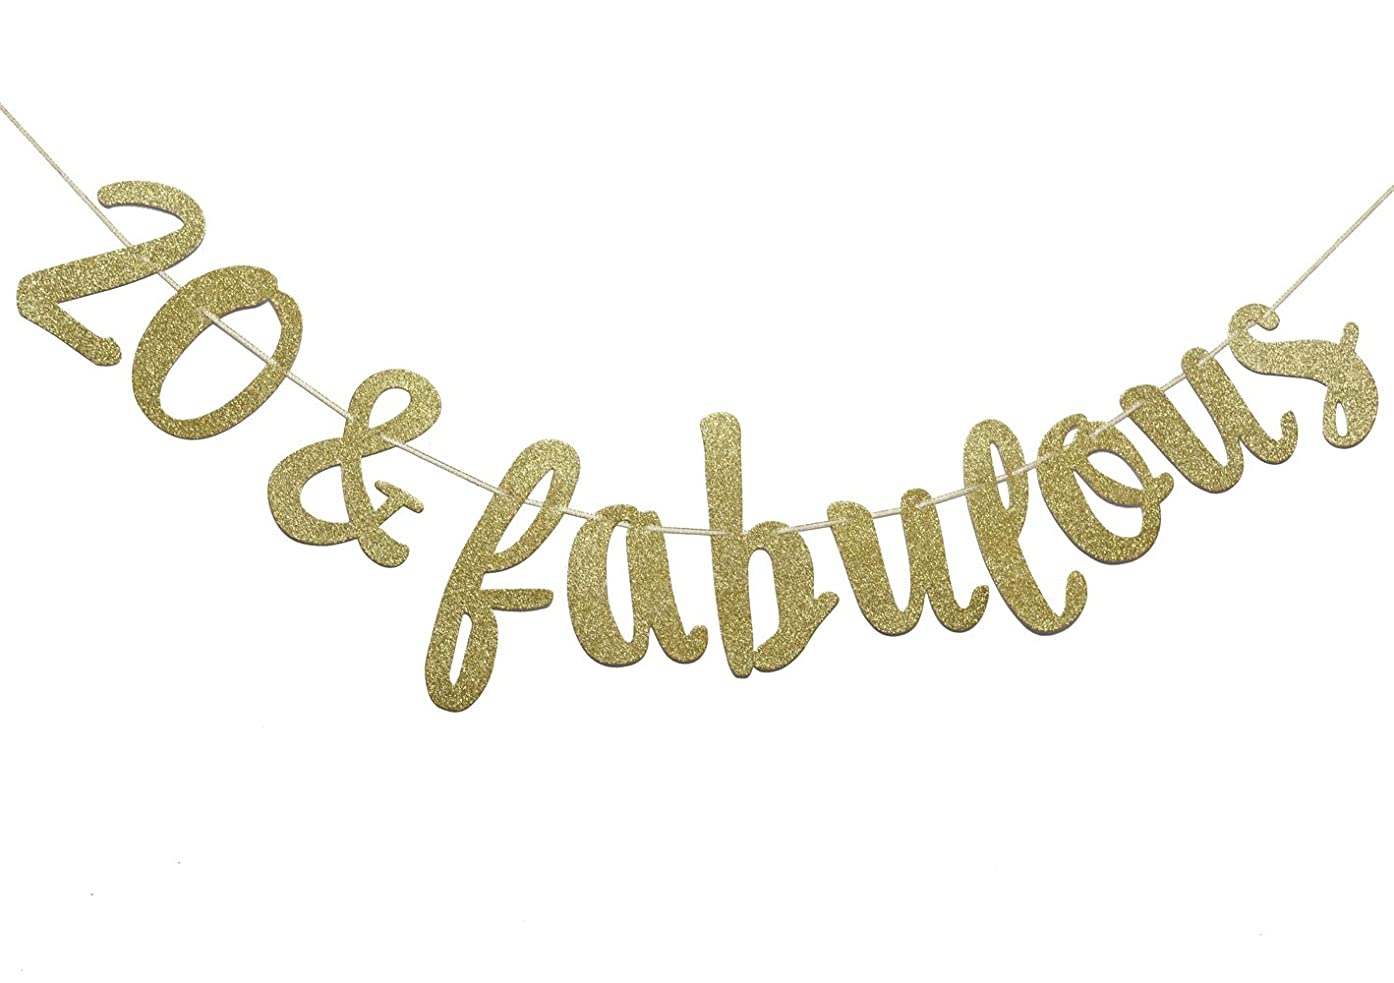 Firefairy 20 & Fabulous Cursive Banner-Happy 20th Birthday Anniversary Party Supplies, Ideas and Decorations(Gold)